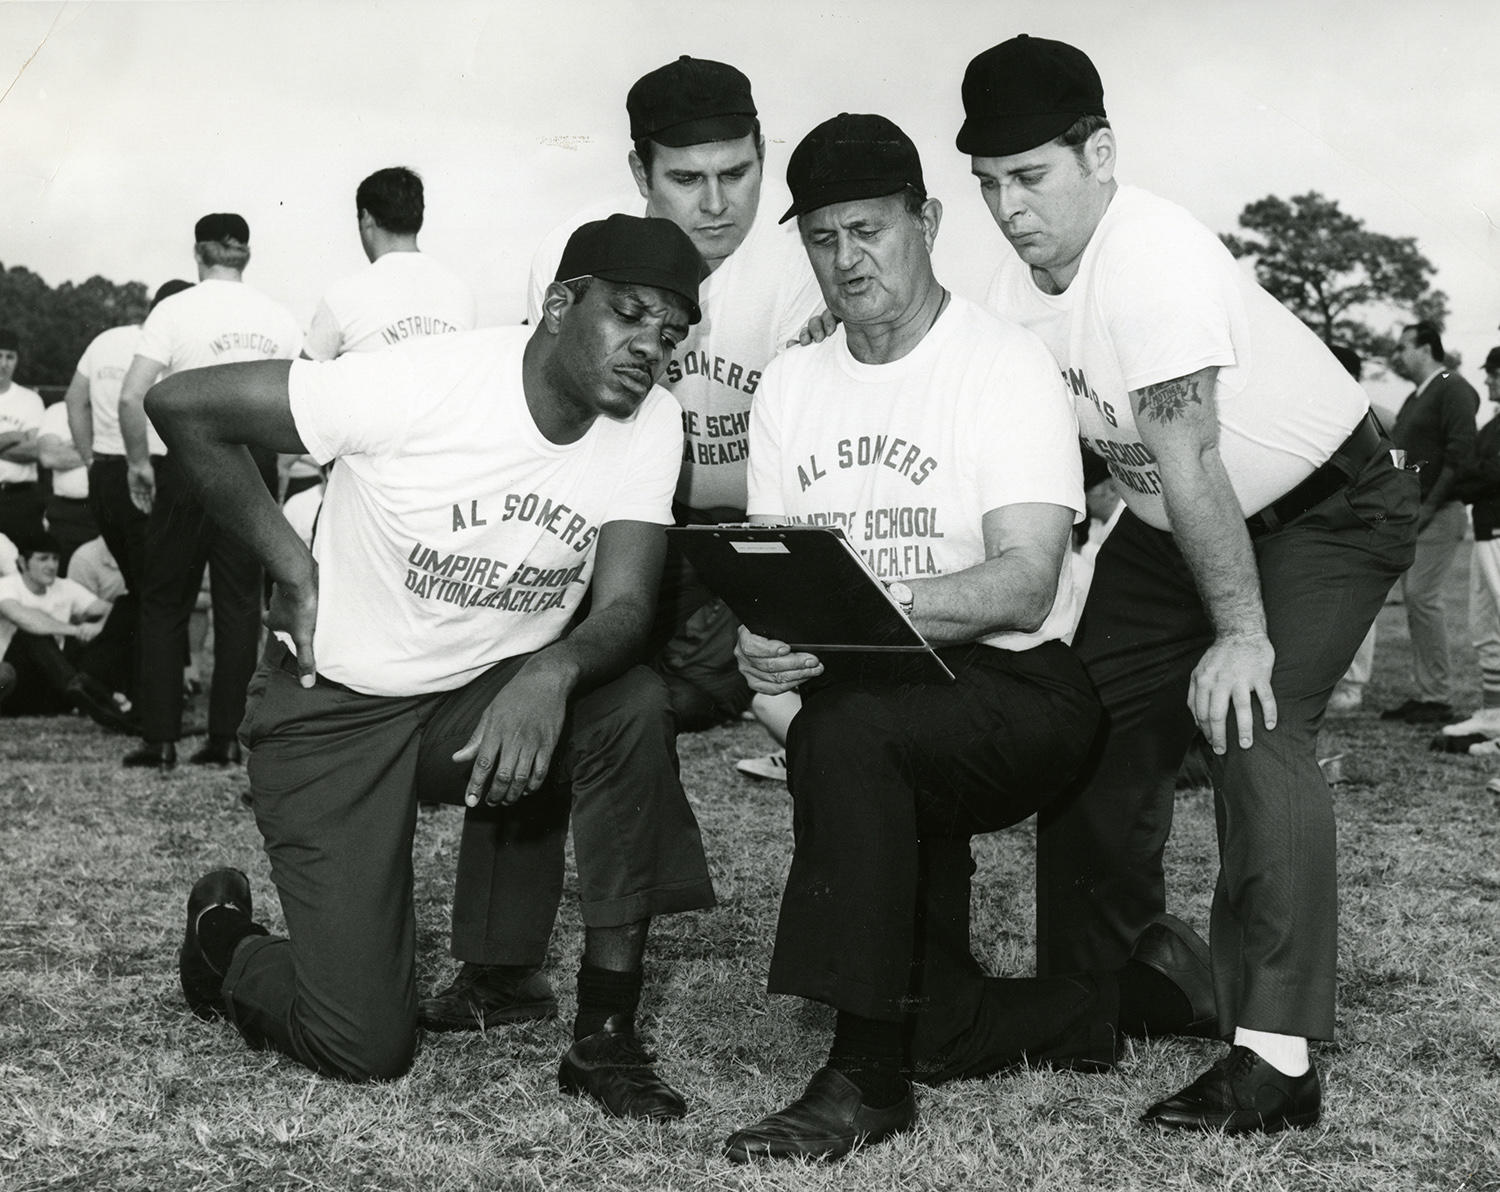 """At the time Emmett Ashford was training to become a major league umpire, many umpire schools weren't integrated. Al Somers' school was one of the first to integrate, with students of all races following the path that Ashford blazed. <a href=""""http://collection.baseballhall.org/islandora/object/islandora%3A505603"""">PASTIME</a> (National Baseball Hall of Fame and Museum)"""